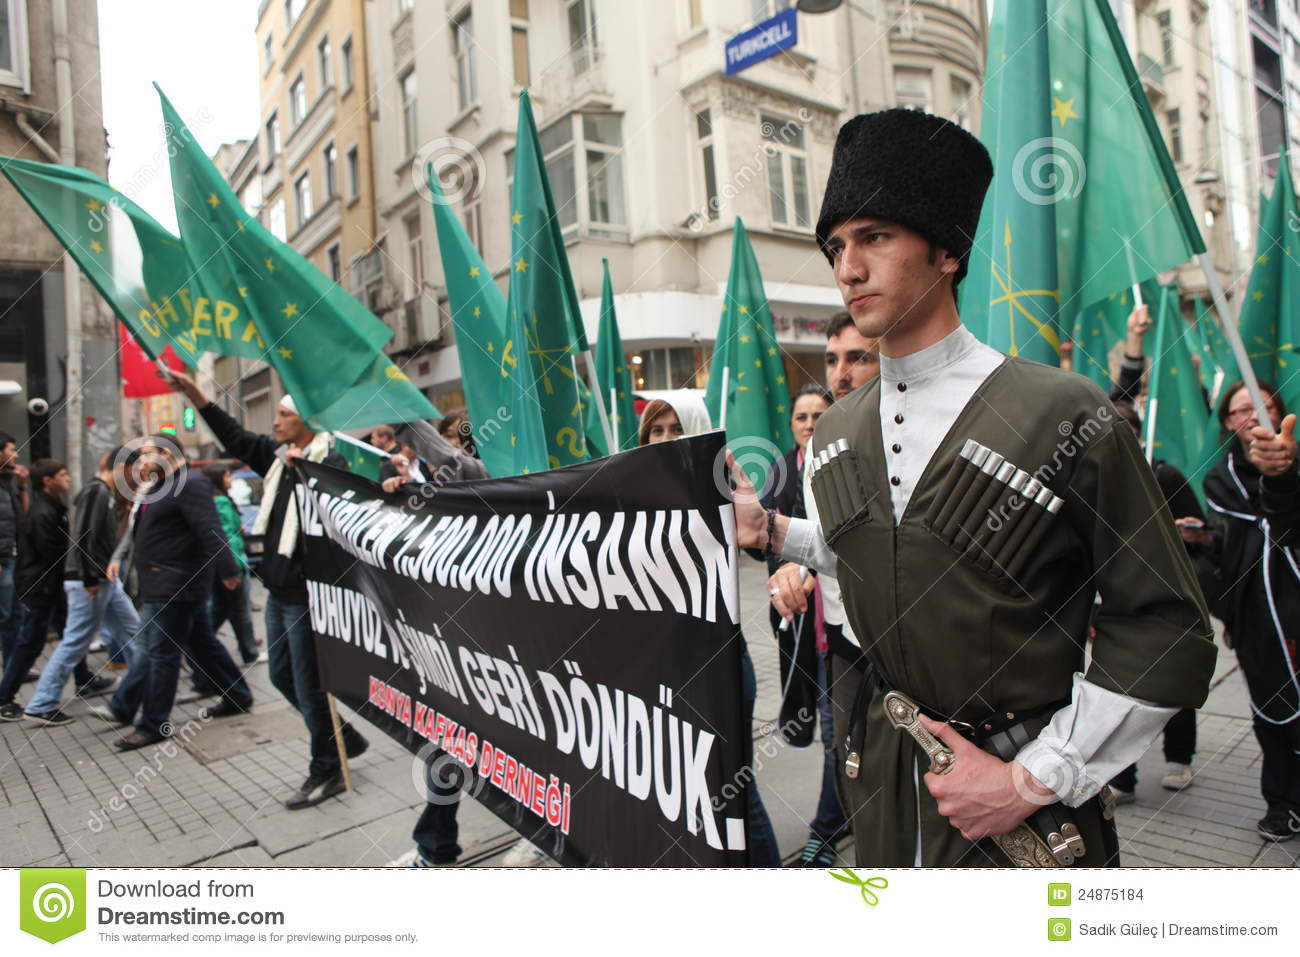 http://www.dreamstime.com/stock-images-circassian-activist-group-image24875184